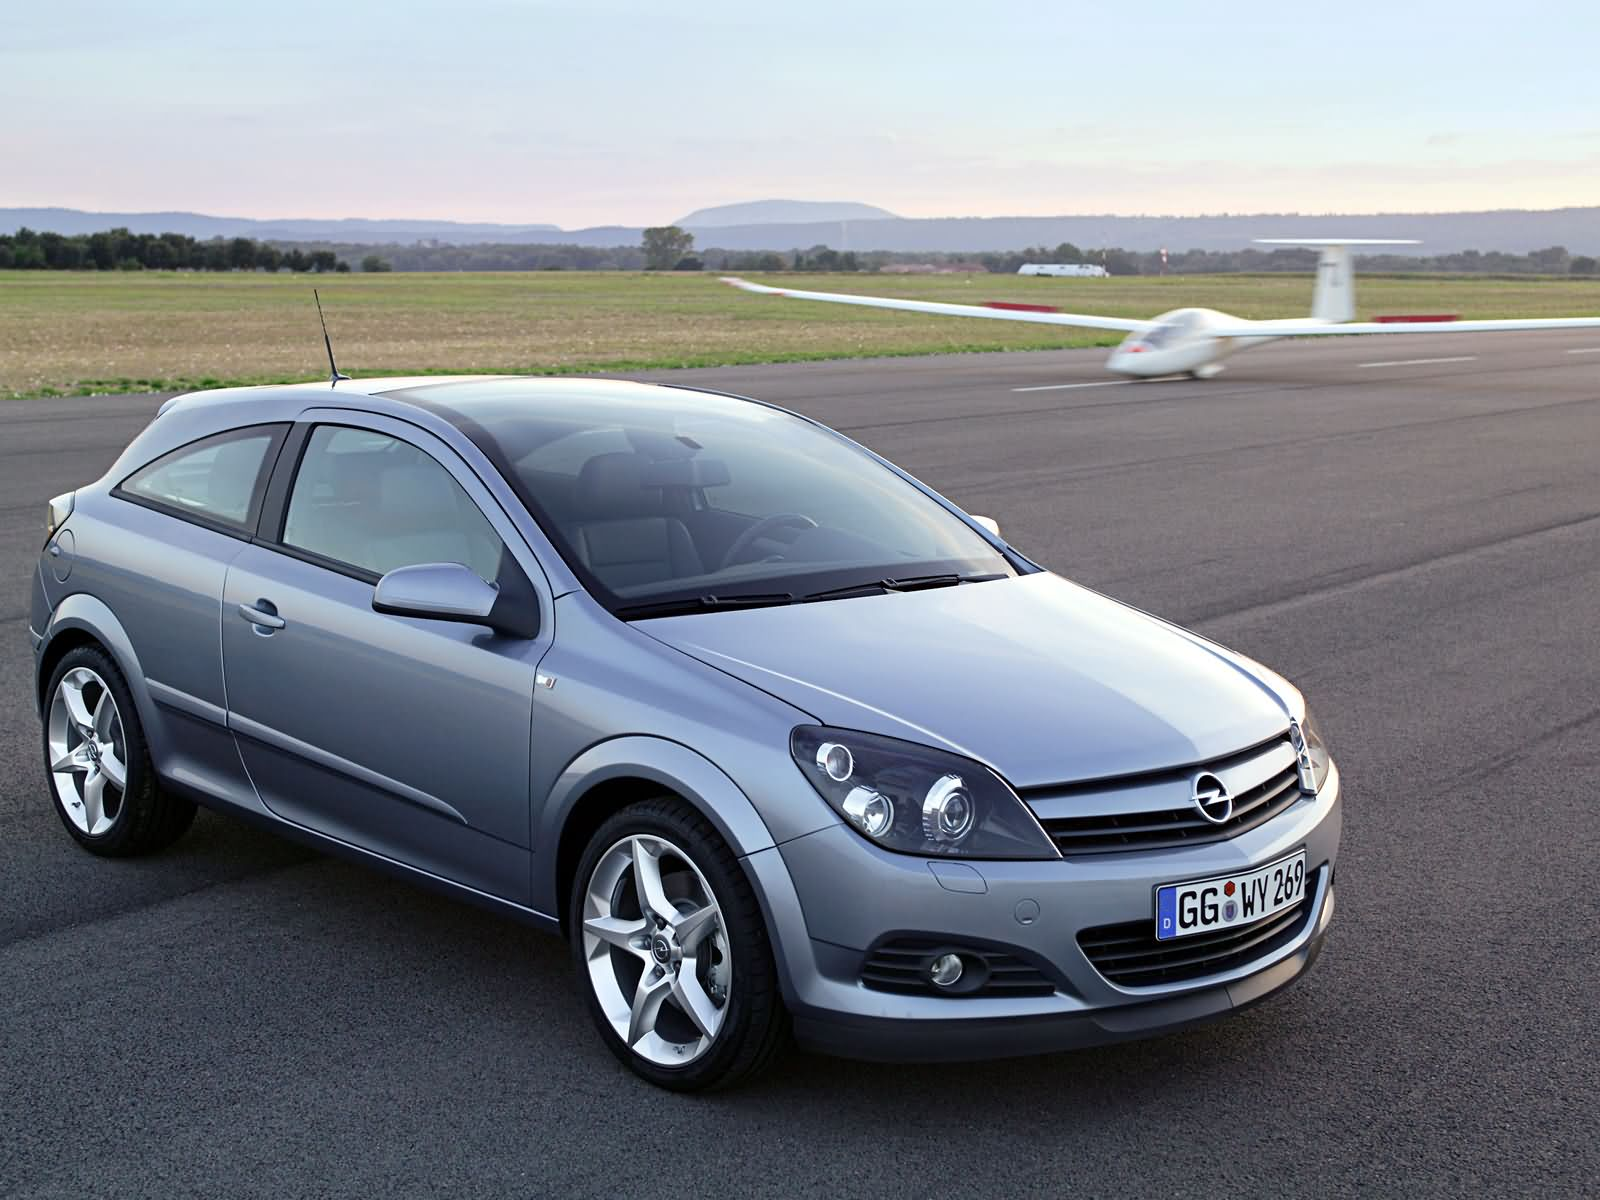 2012 opel astra h gtc pictures information and specs auto. Black Bedroom Furniture Sets. Home Design Ideas